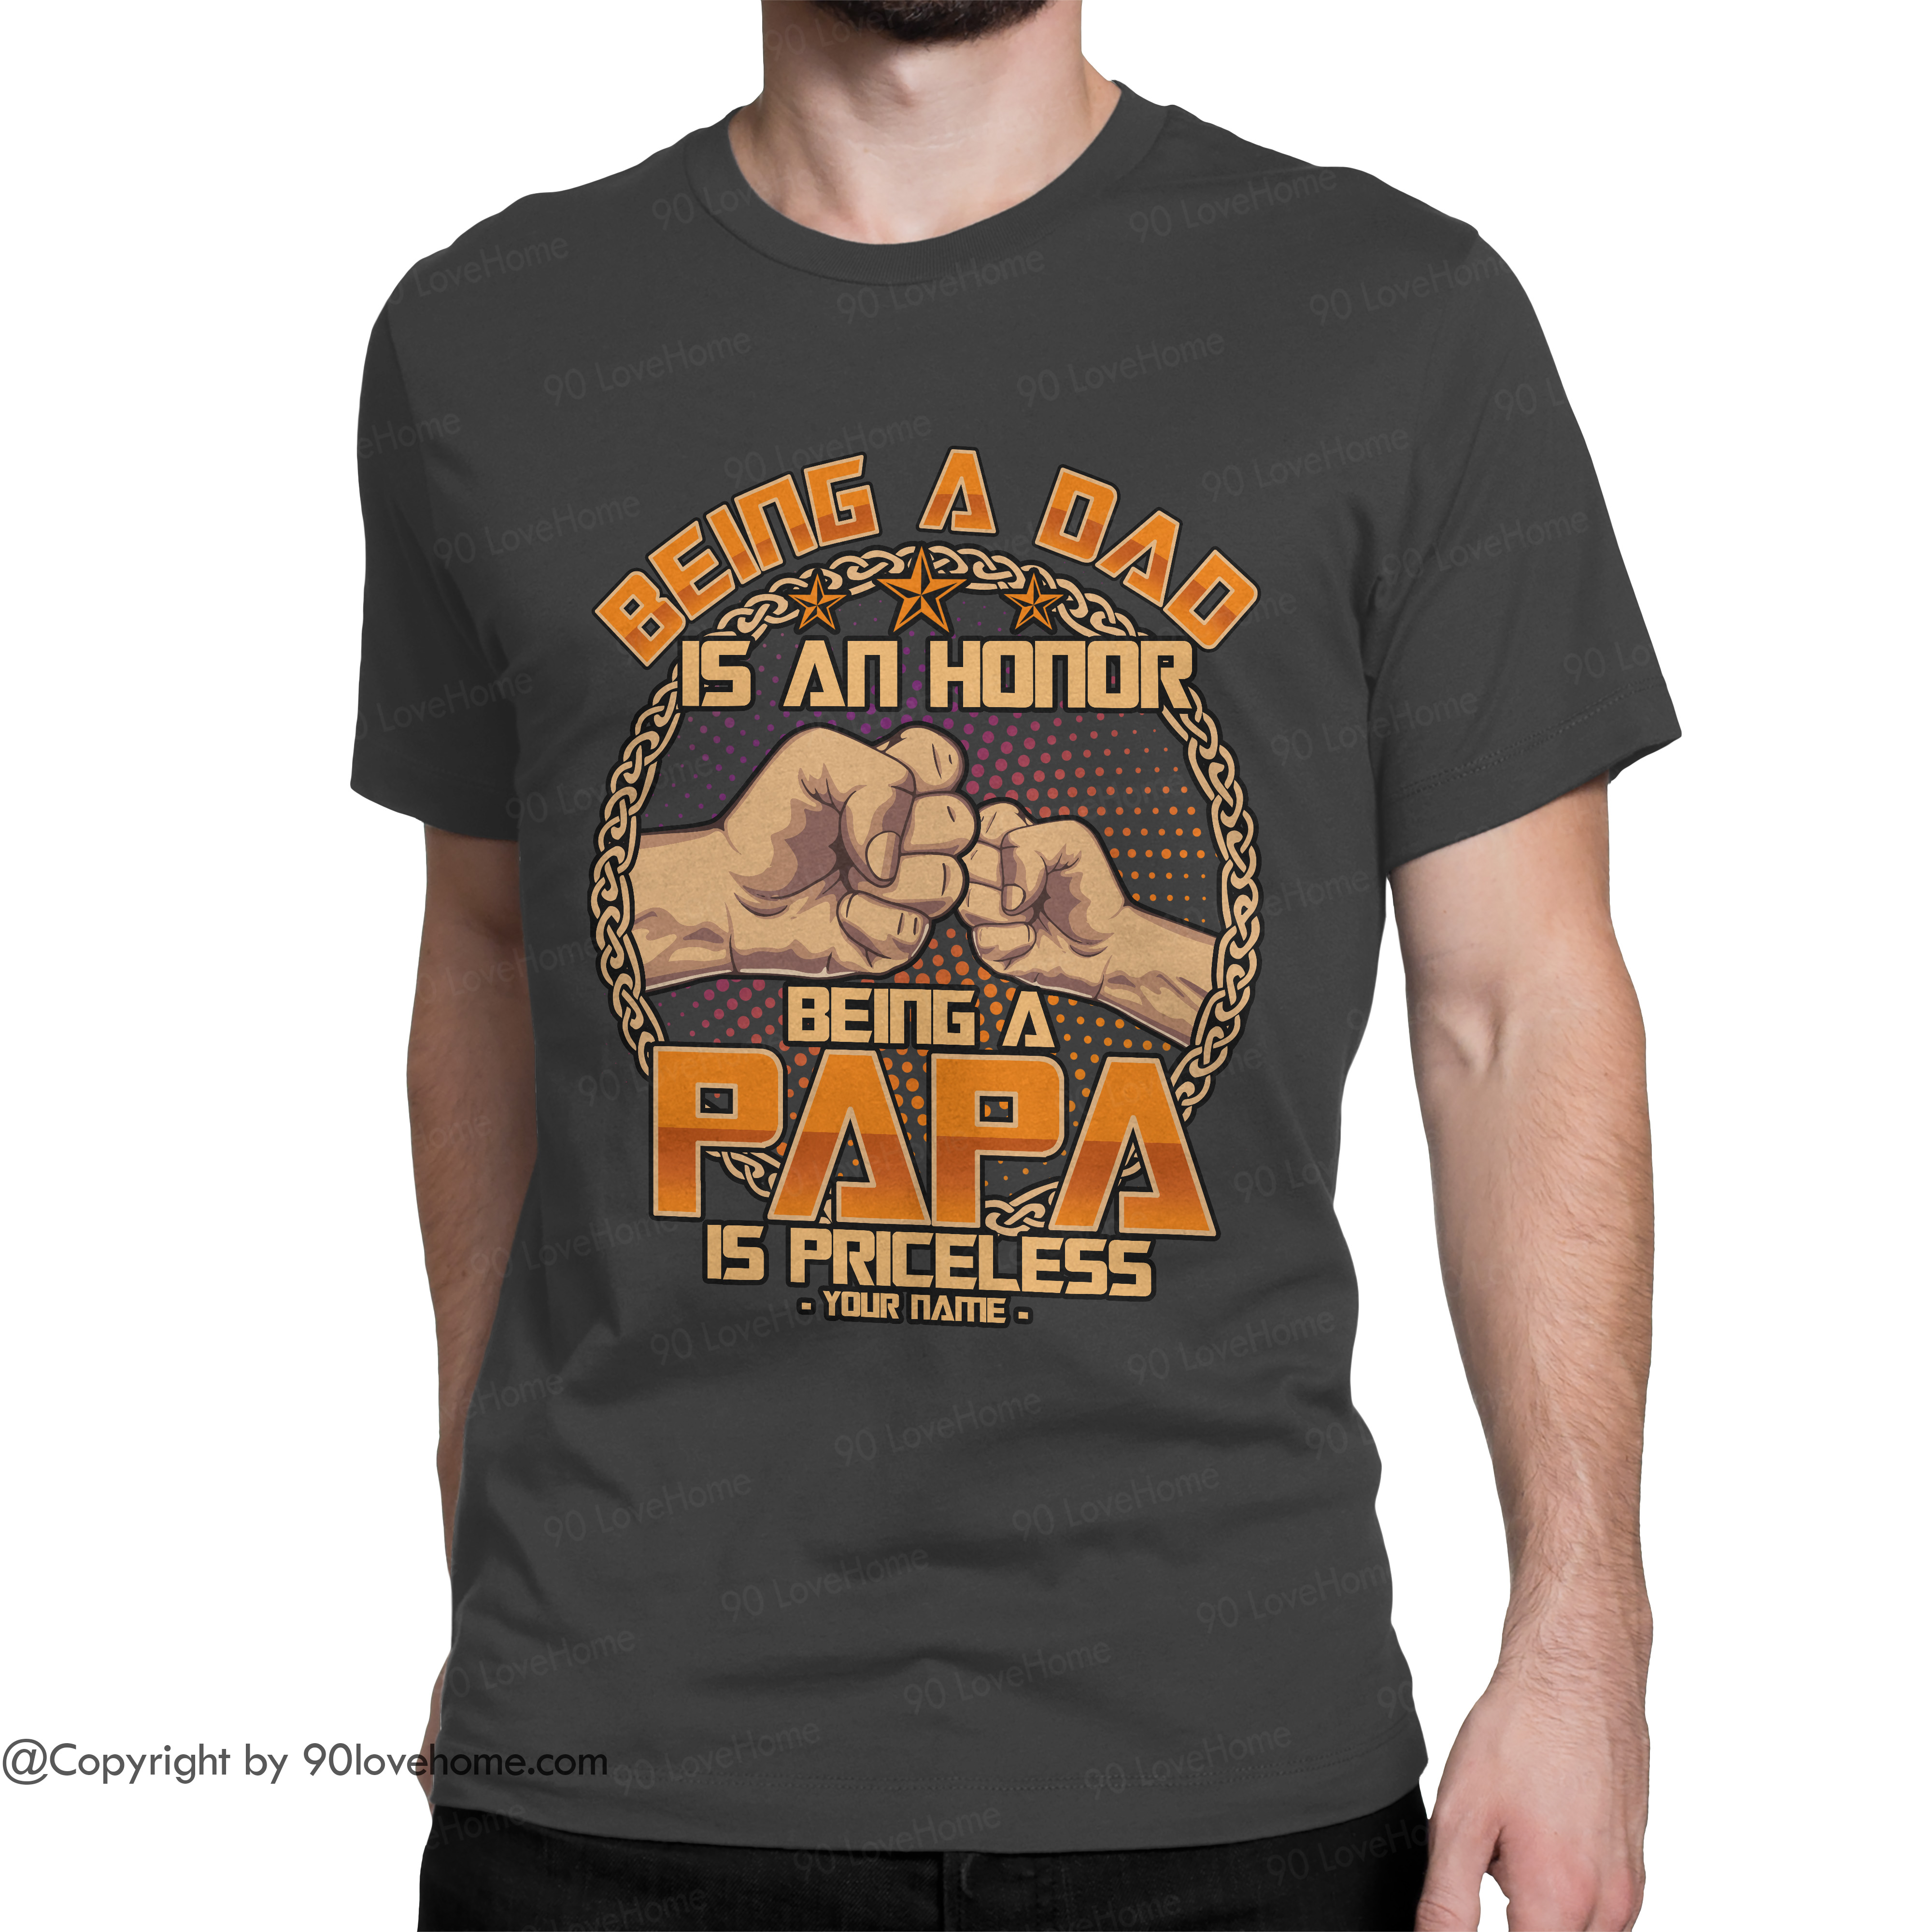 Personalized Being A Dad Is An Honor Unisex T-shirt Funny Dad Quote Tee Father's Day Birthday Gift For Dad 90LoveHome